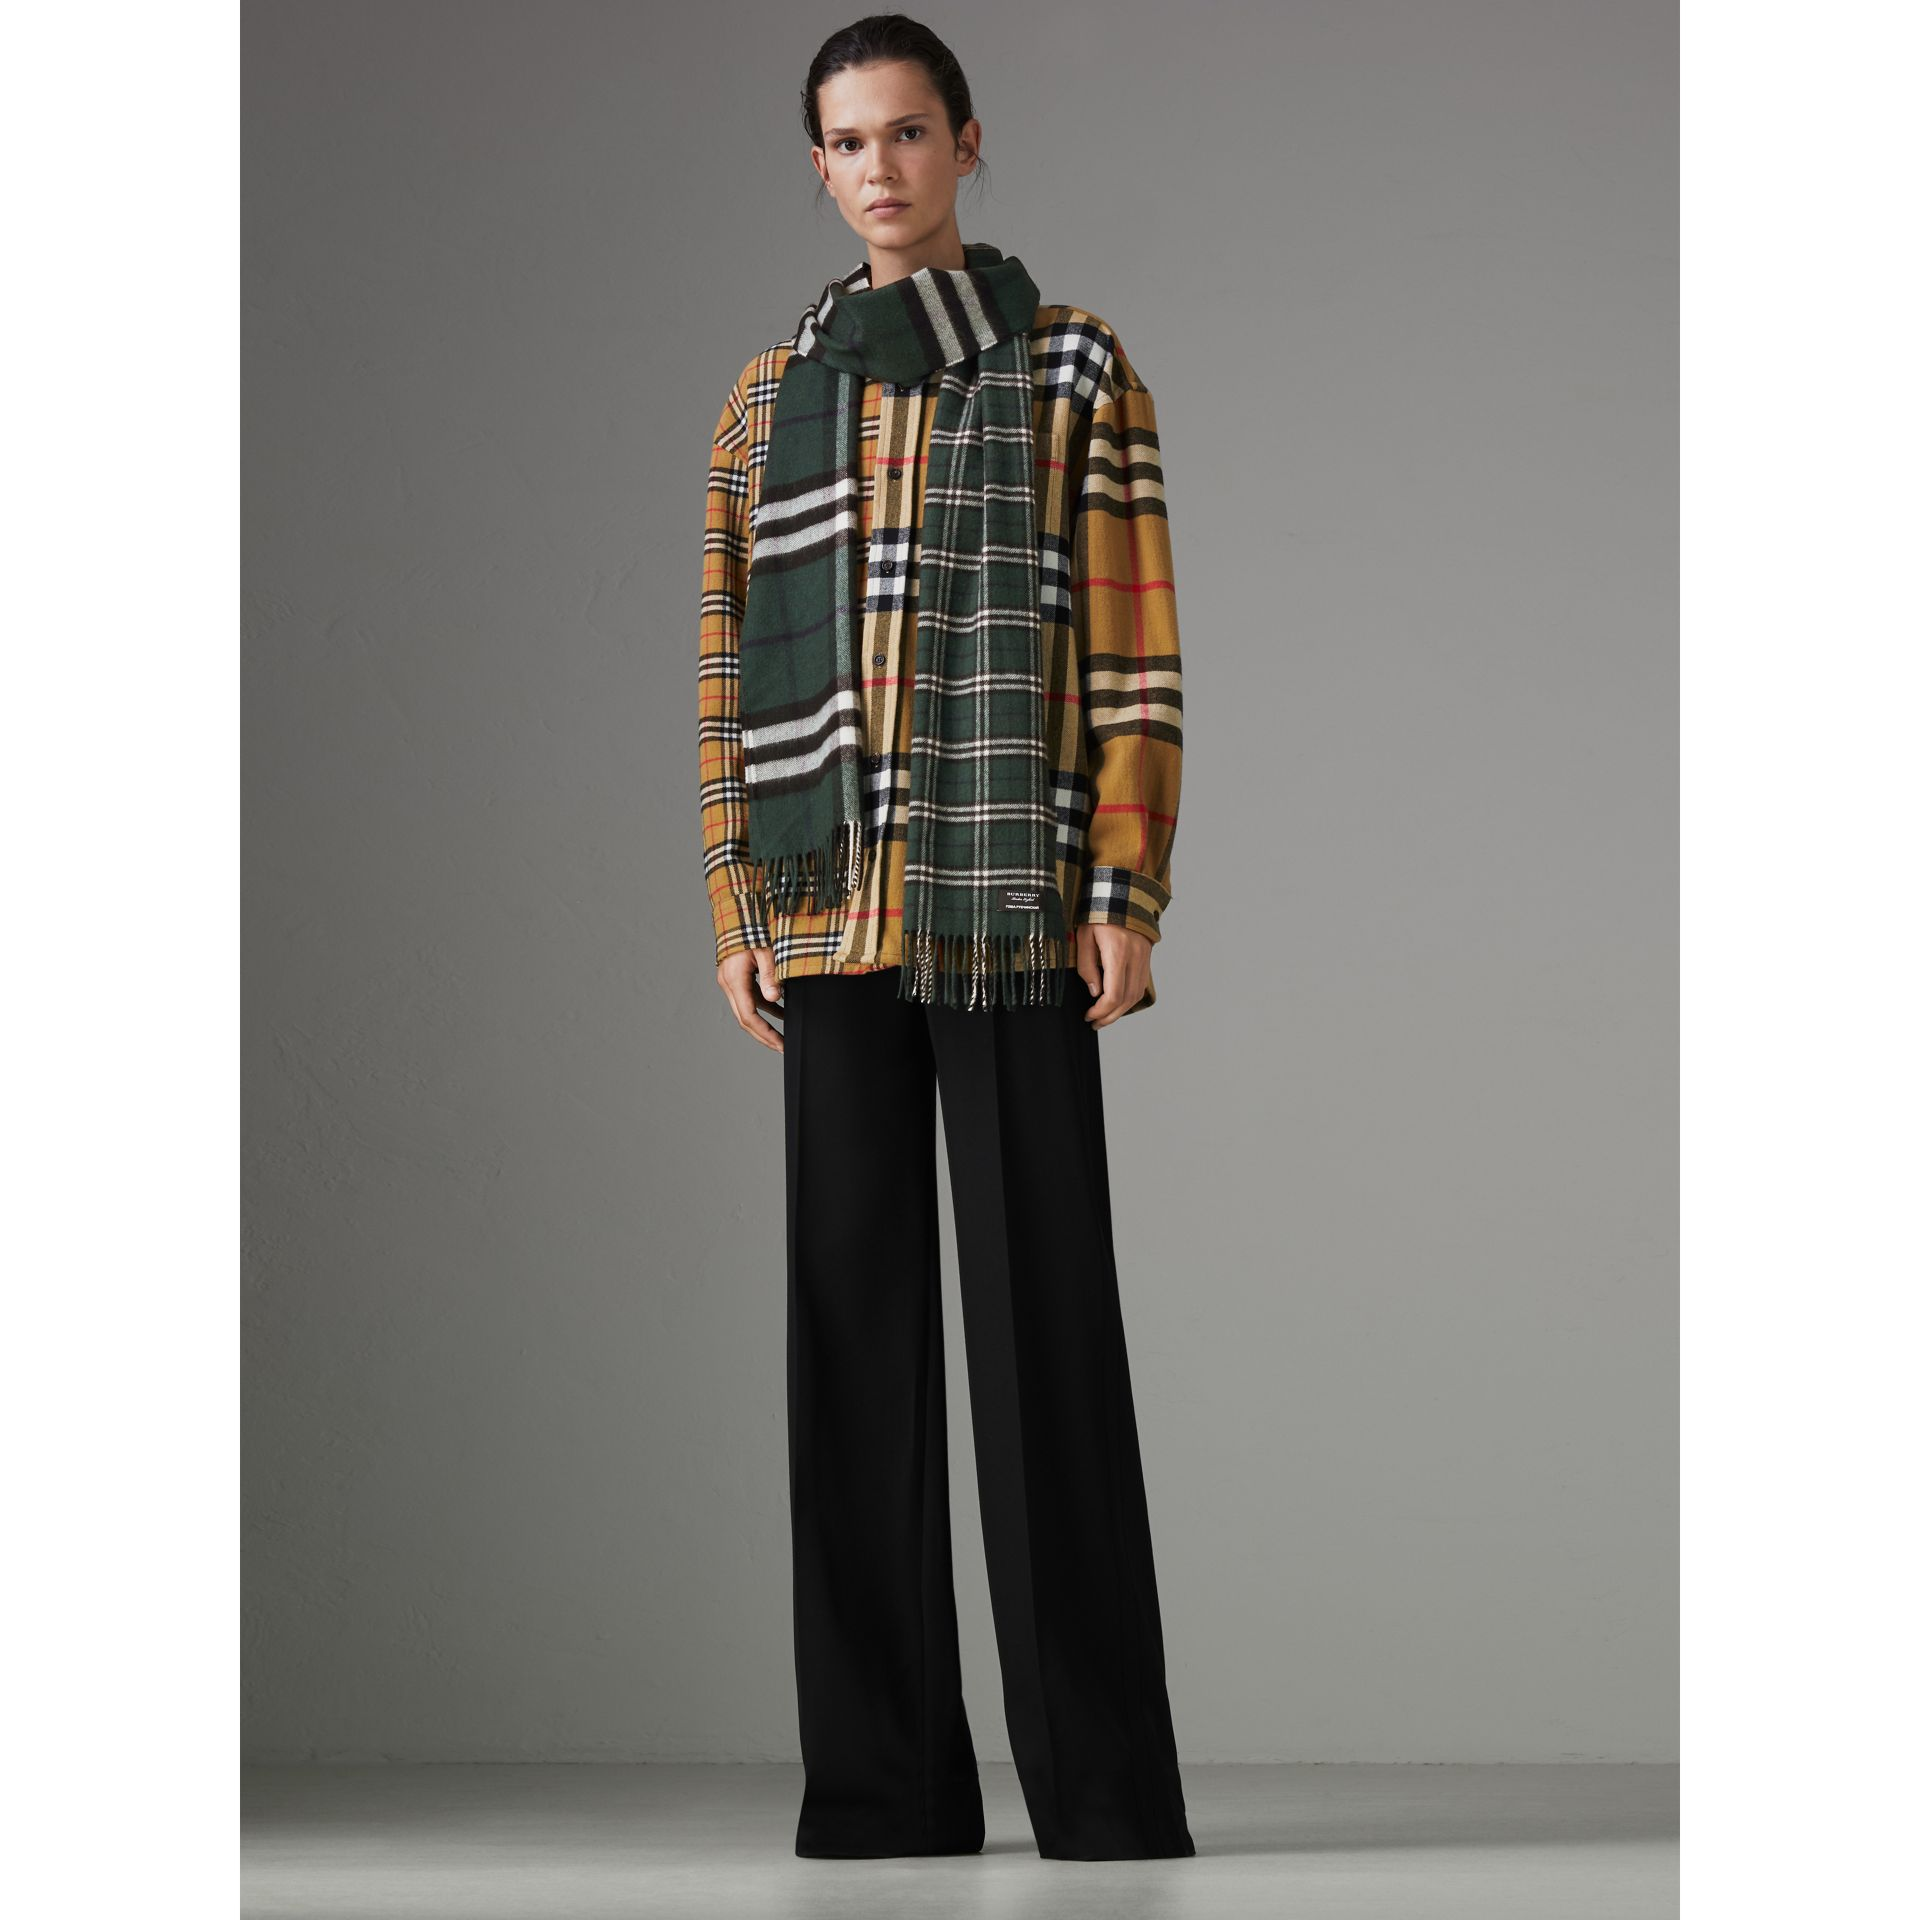 Gosha x Burberry Check Cashmere Double Scarf in Dark Forest Green | Burberry - gallery image 2